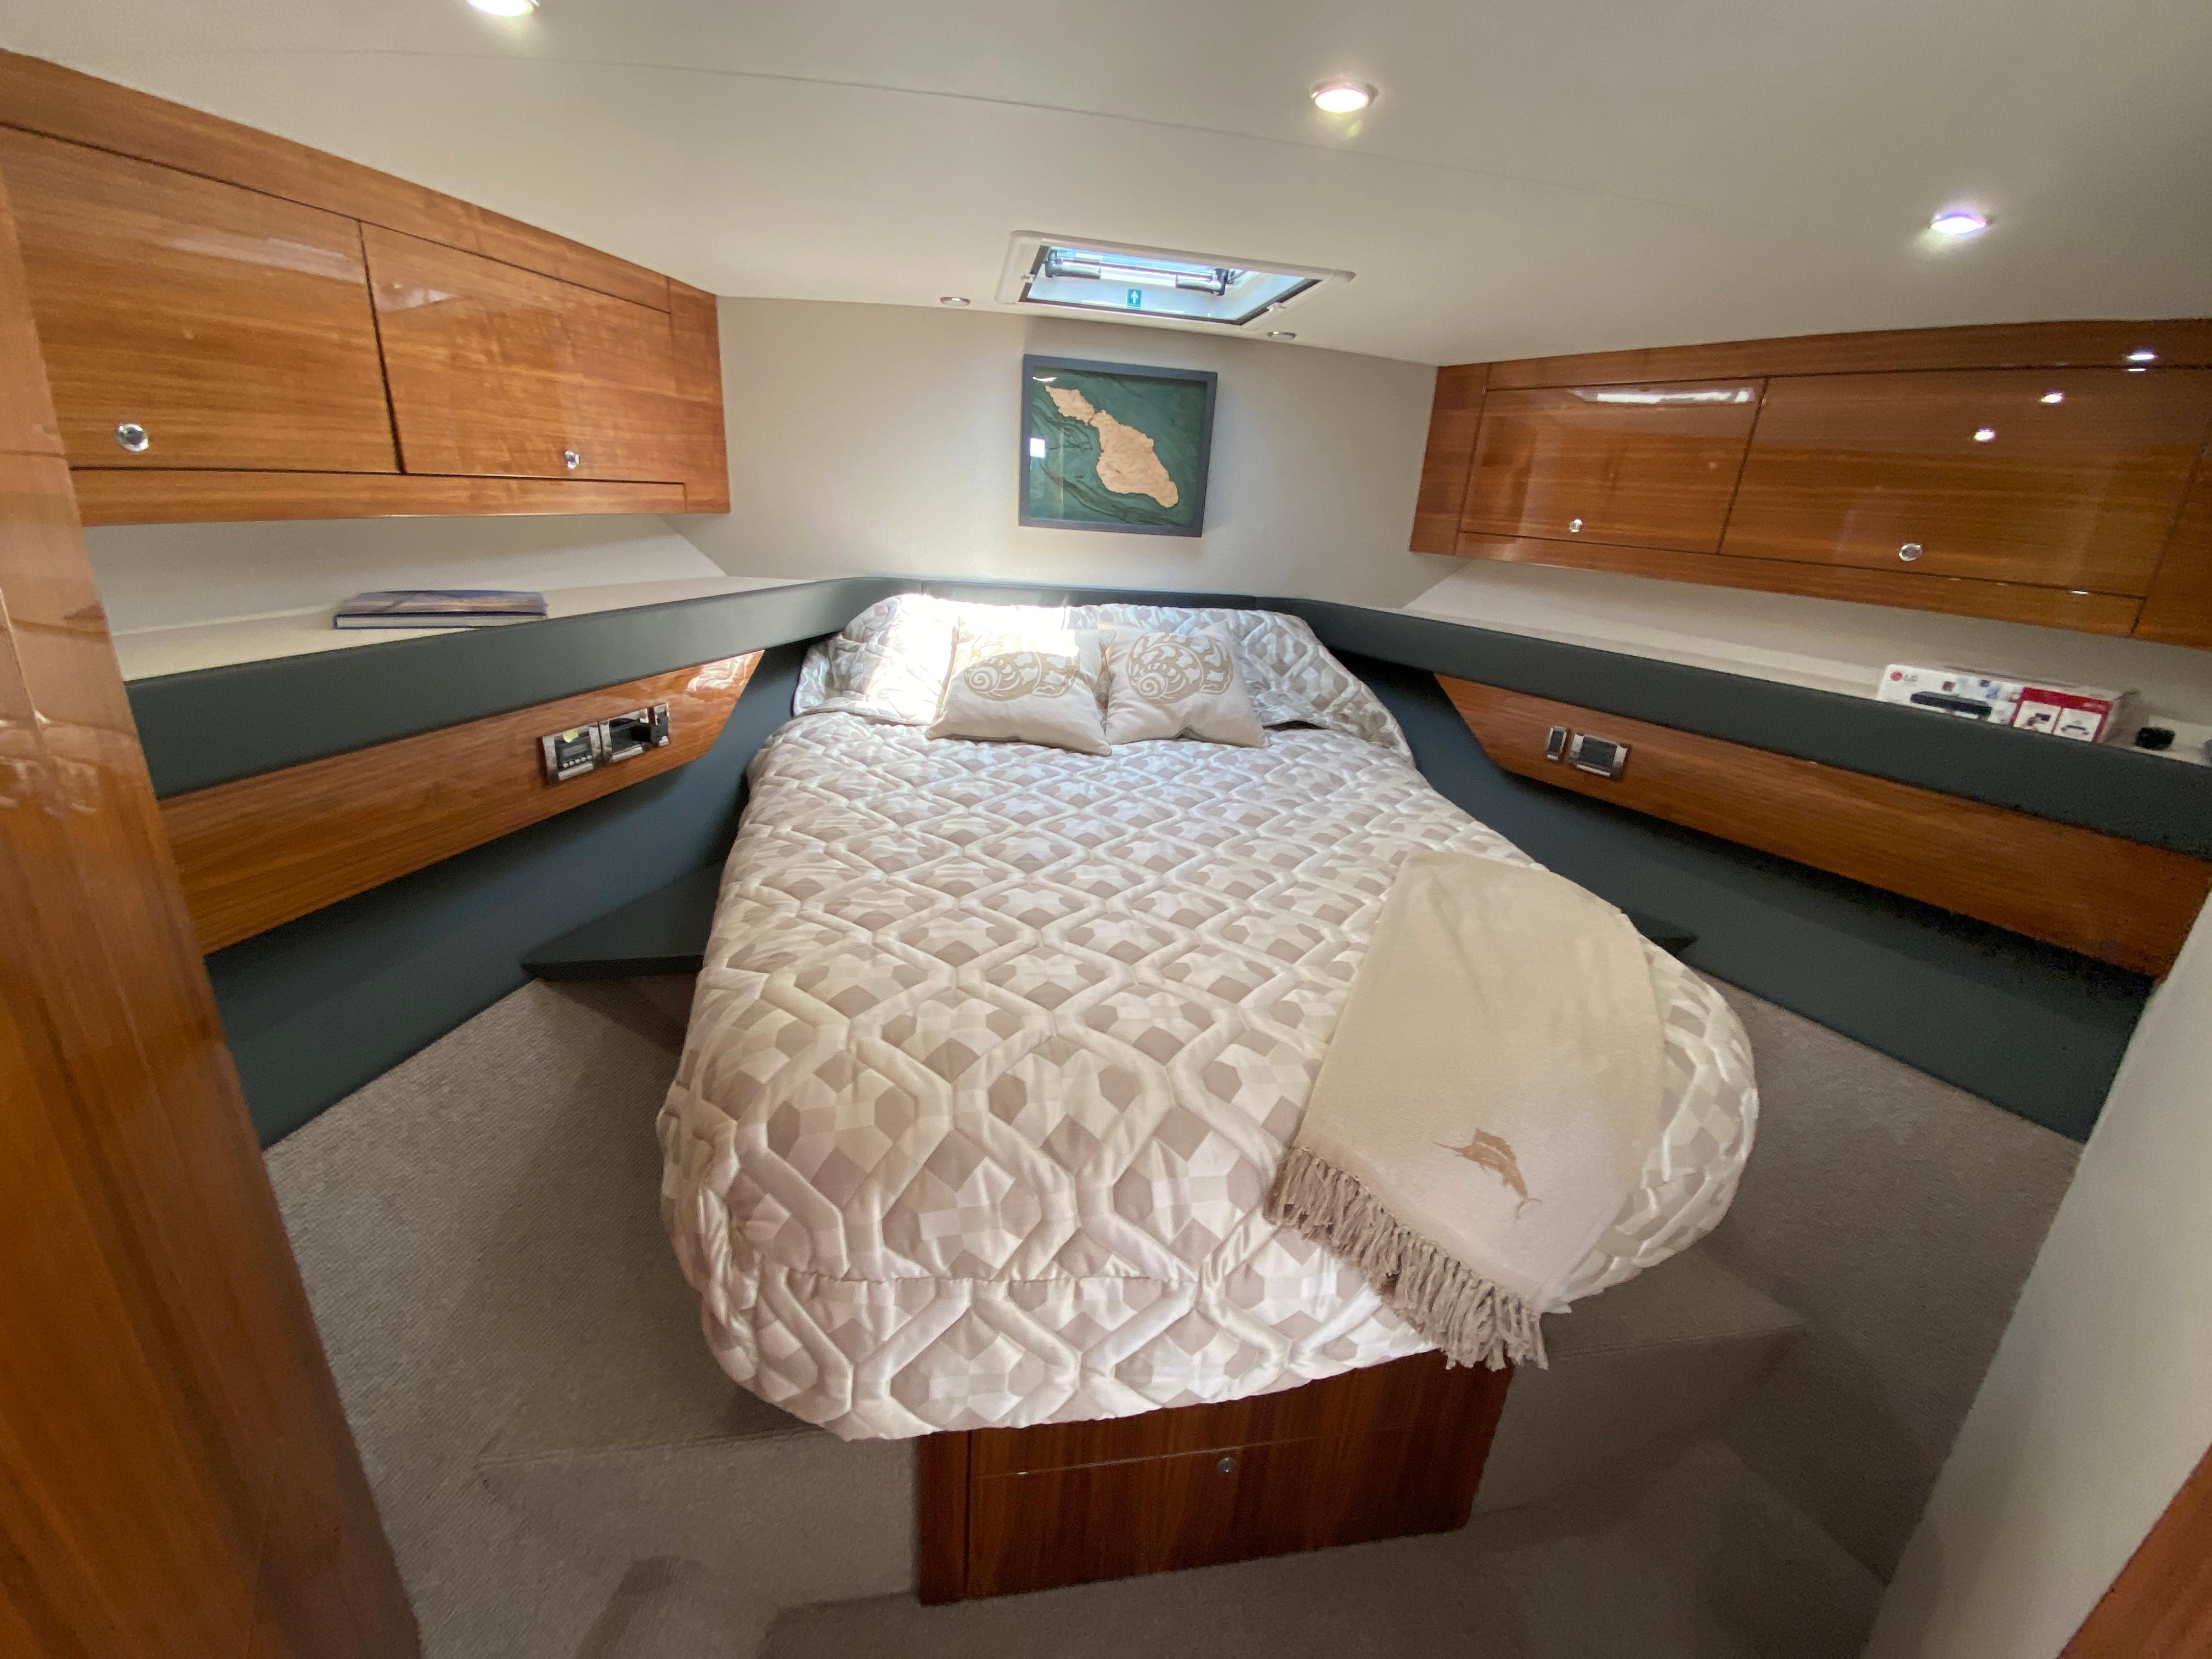 2018 Maritimo S51 #TB5107JP inventory image at Sun Country Coastal in Newport Beach